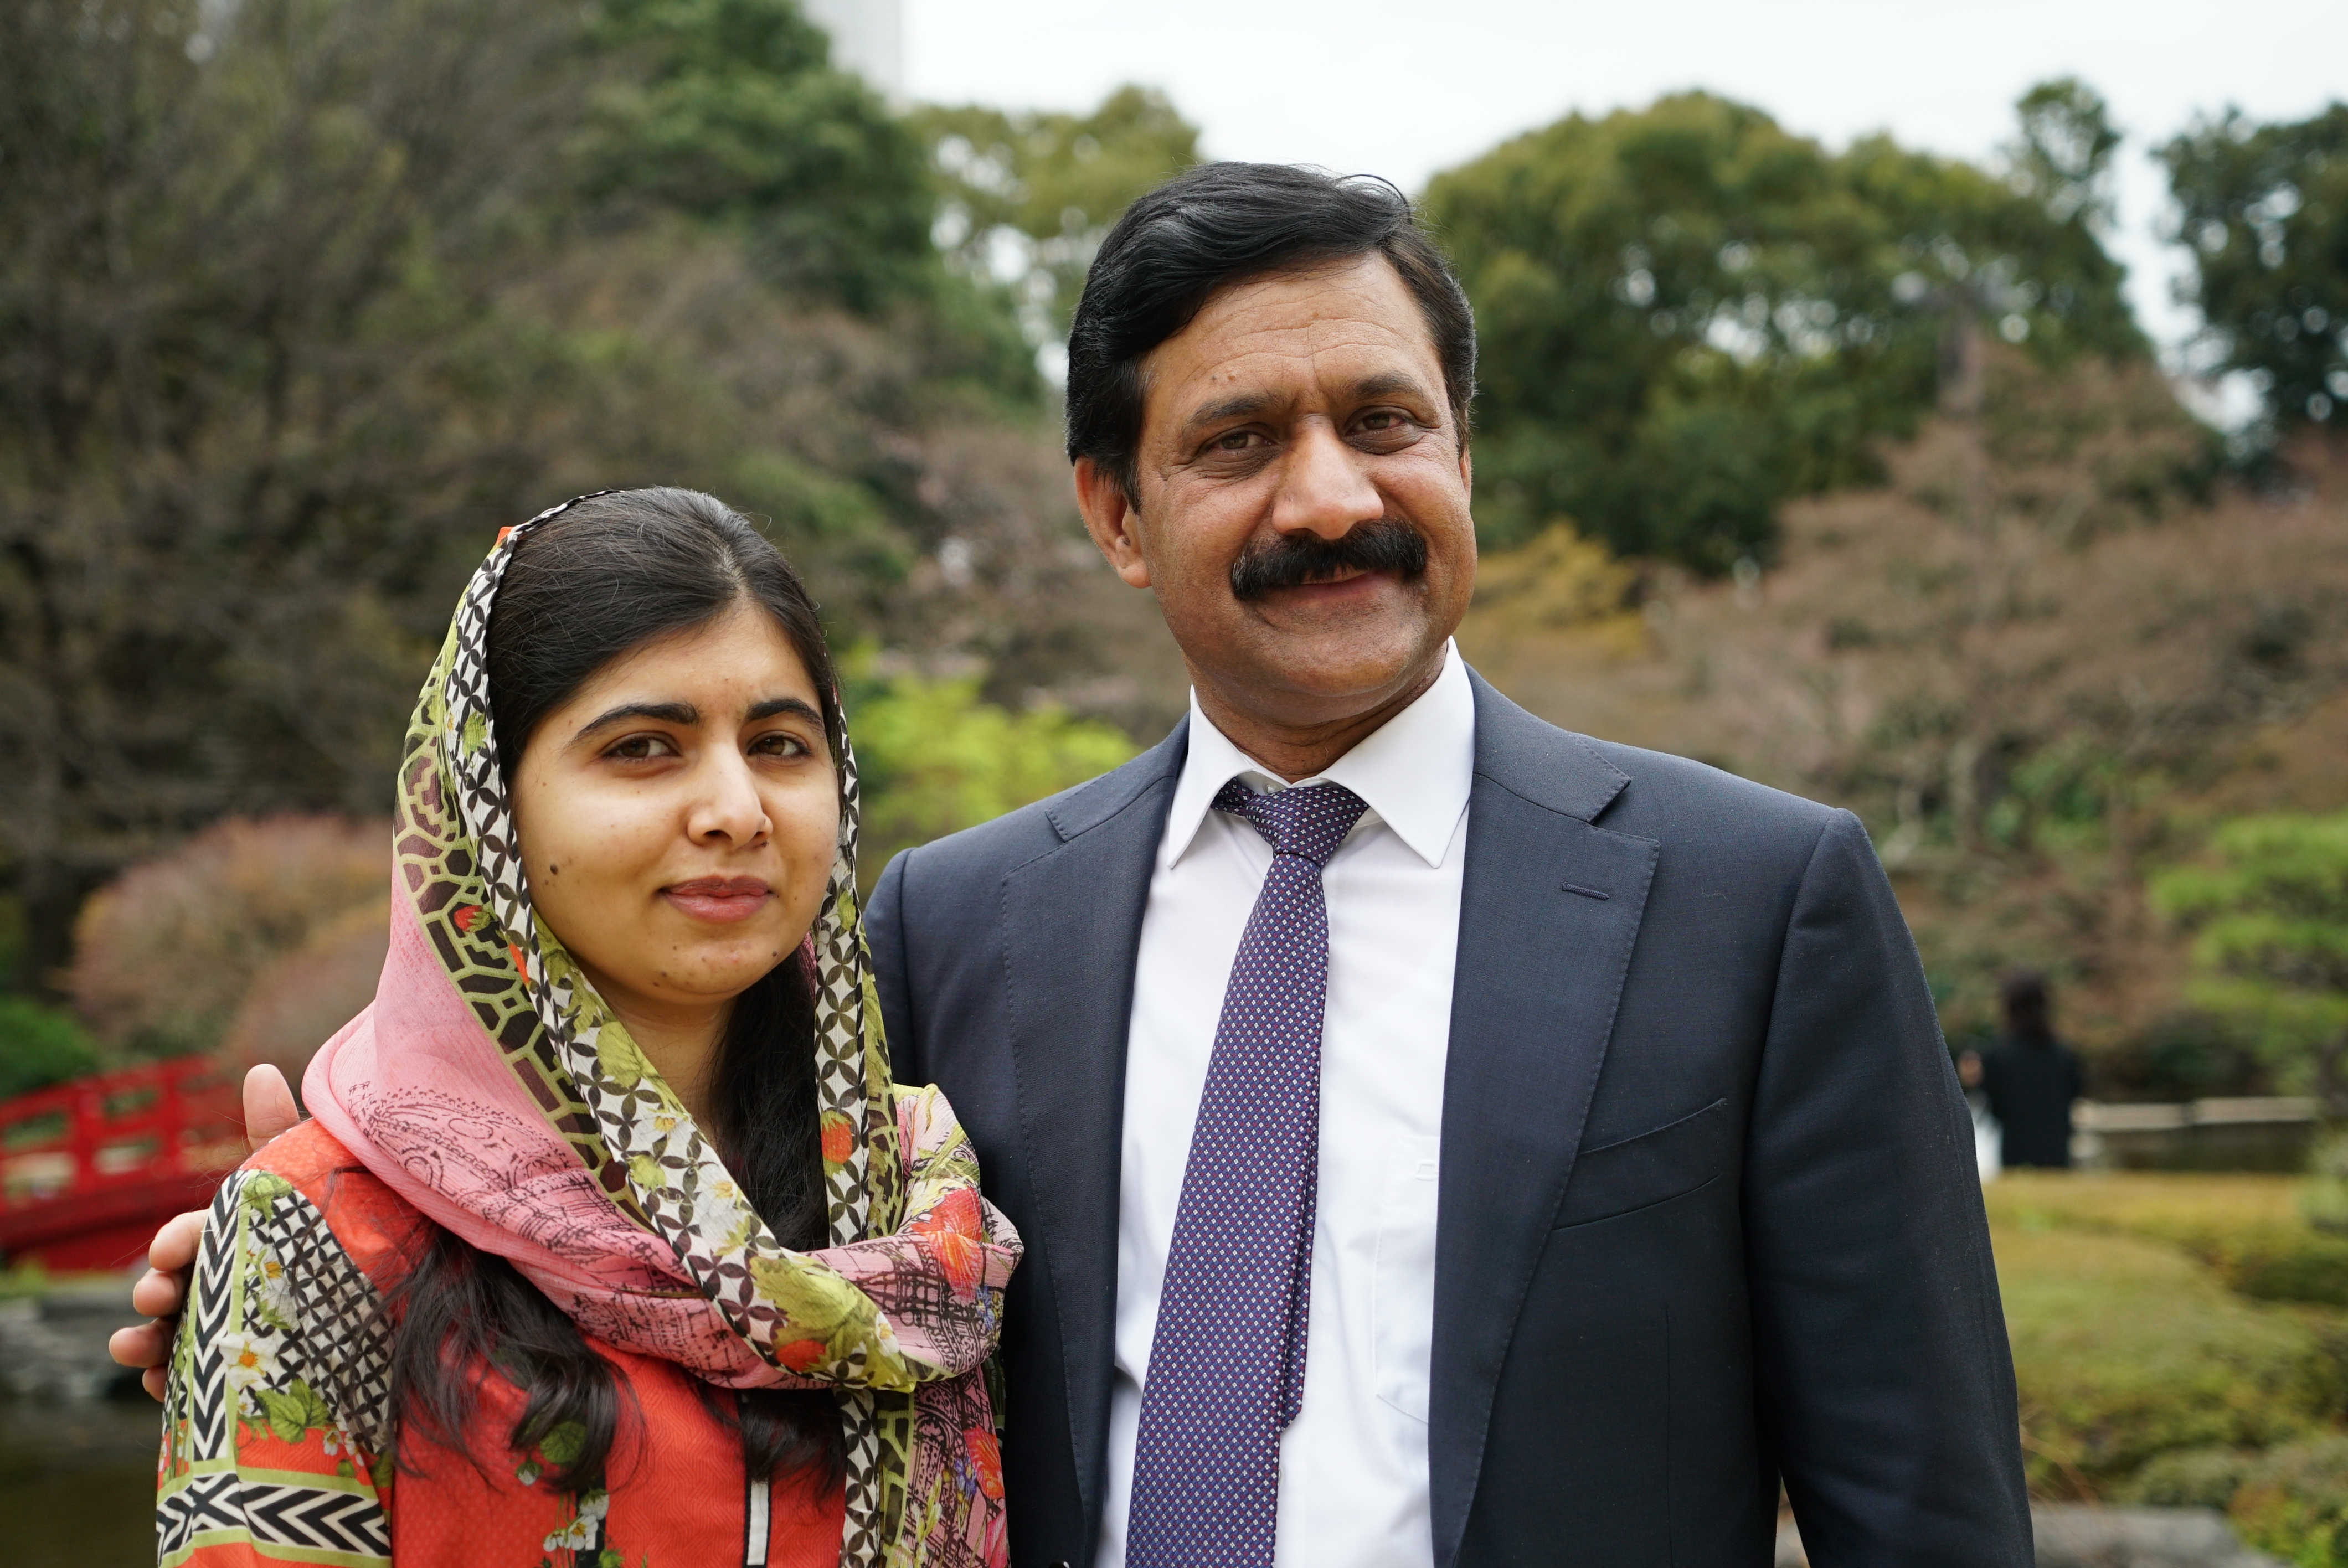 Ziauddin Yousafazi with his daughter Malala